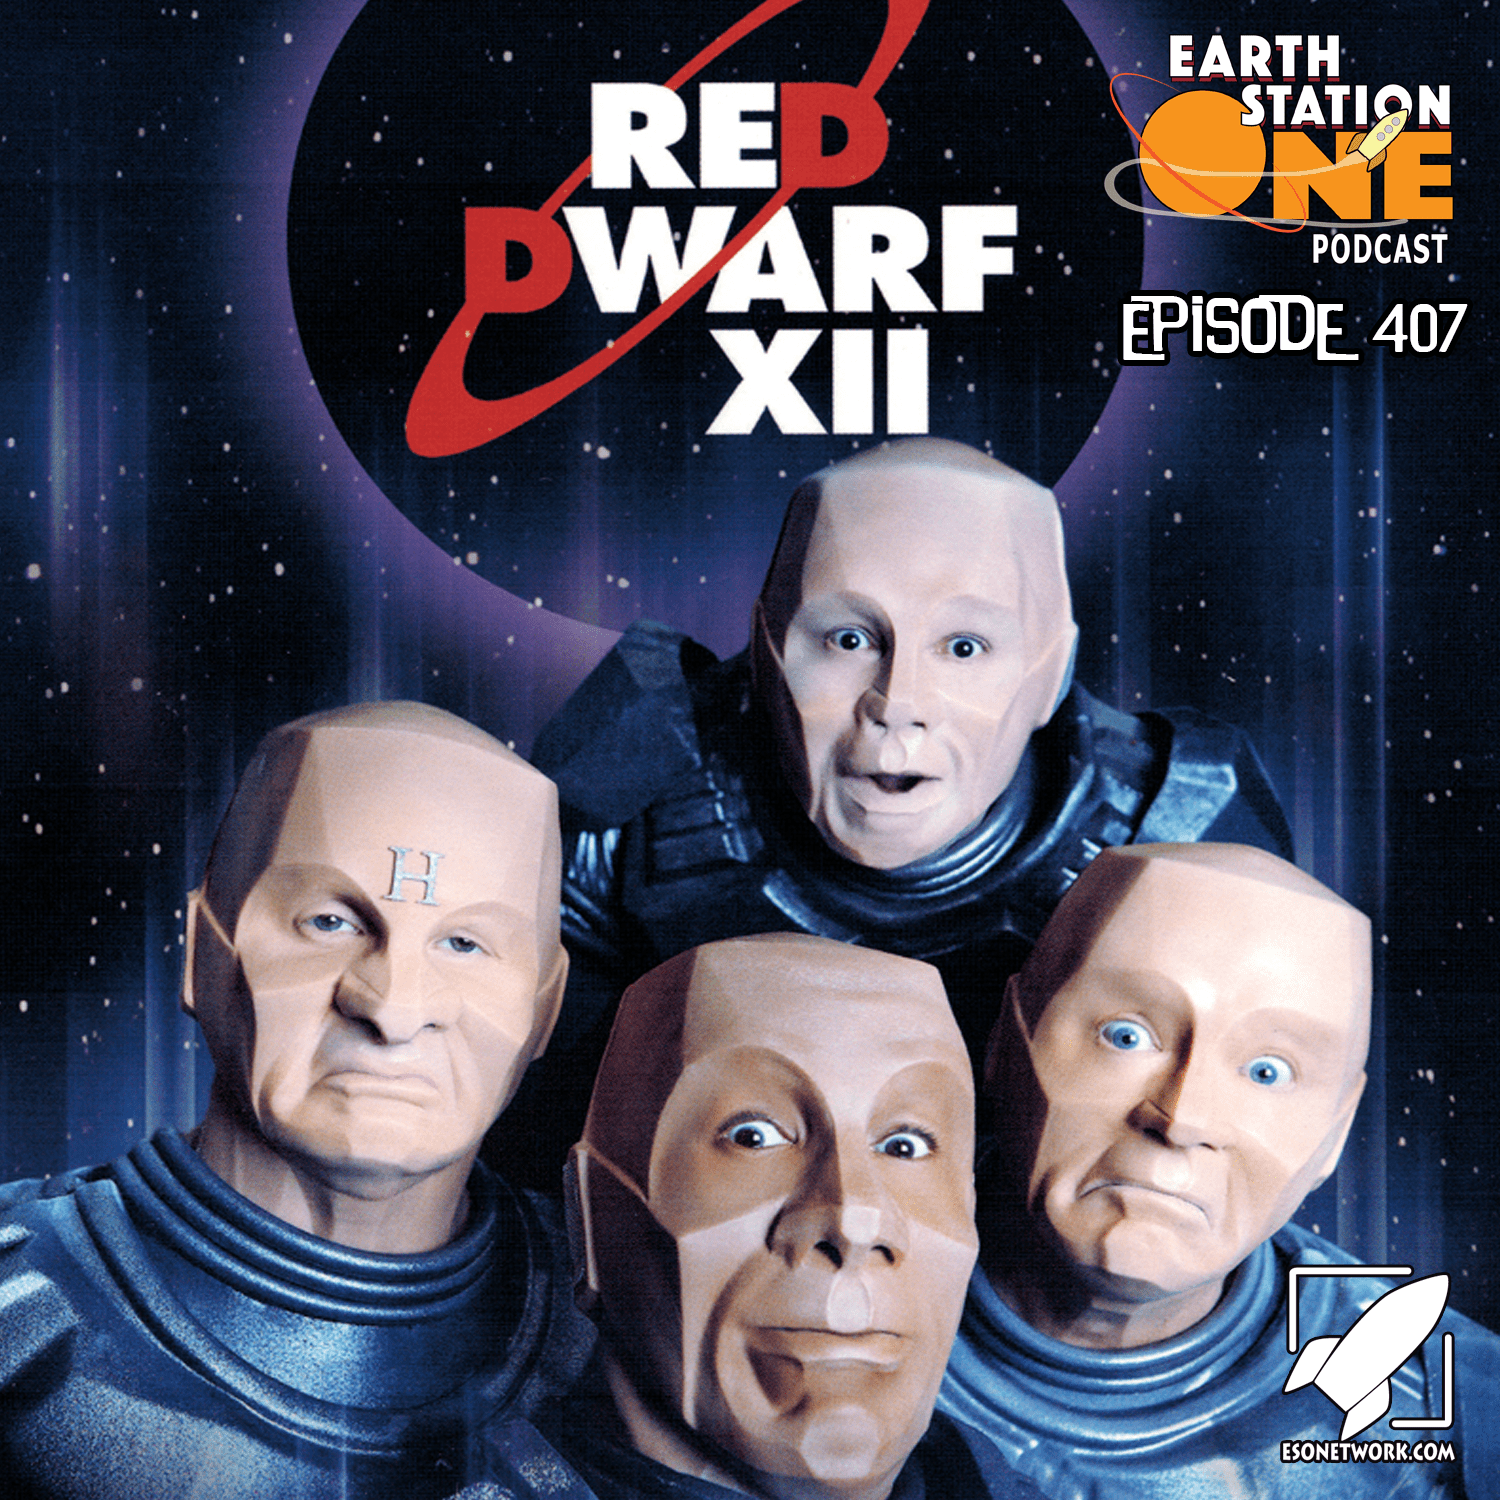 Earth Station One Podcst Ep 407 - Red Dwarf Series XII